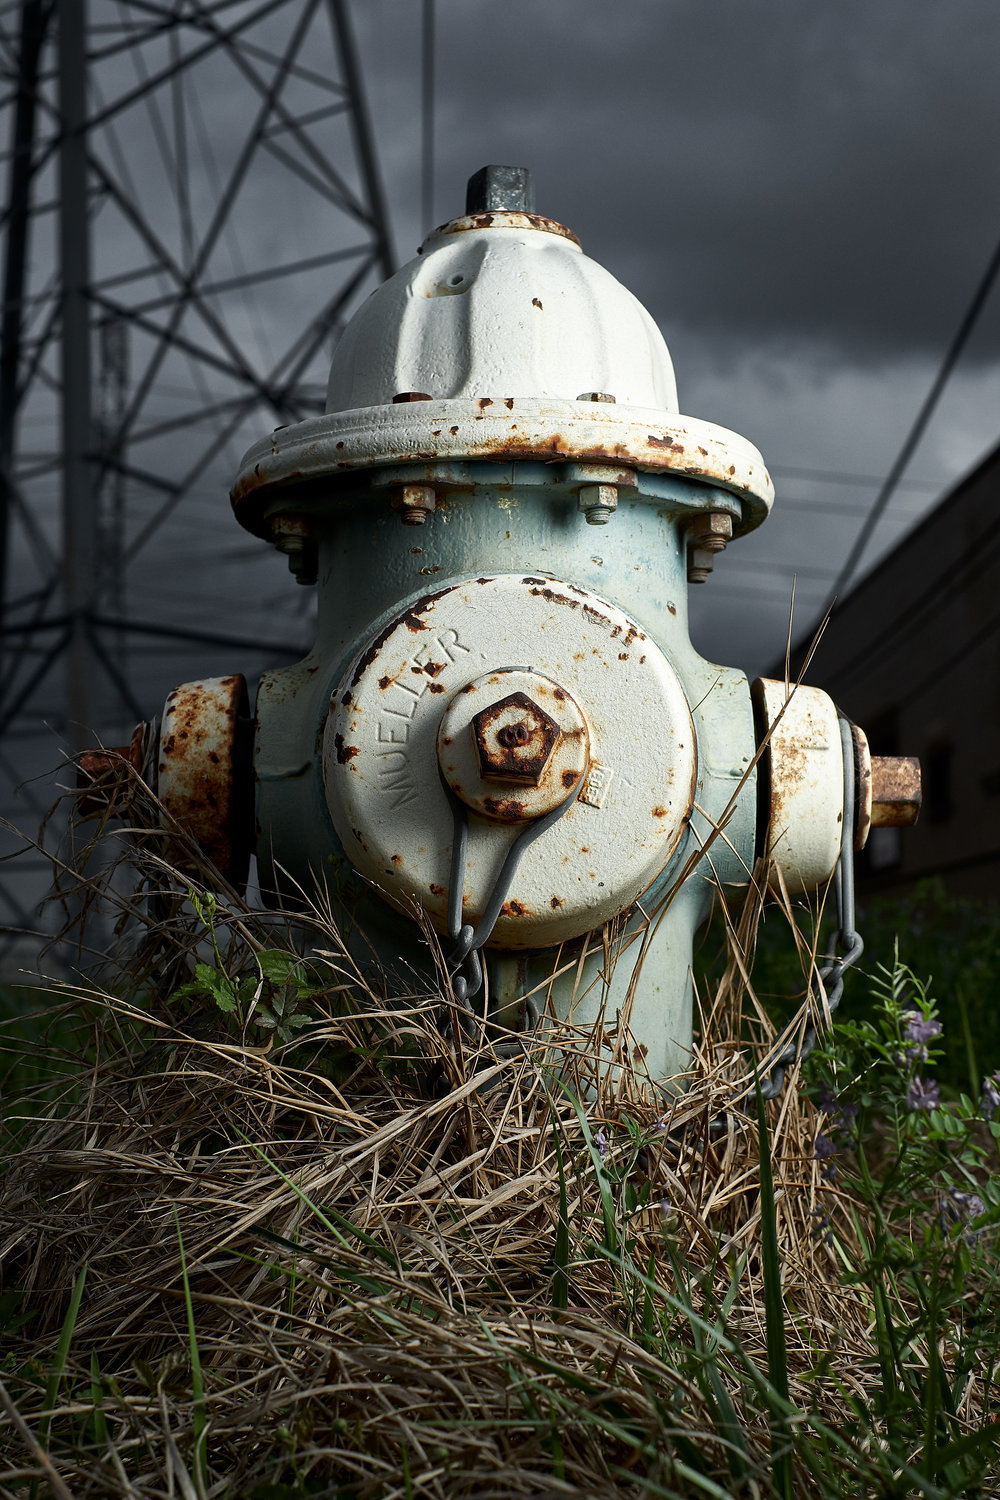 Hydrant Portrait #29